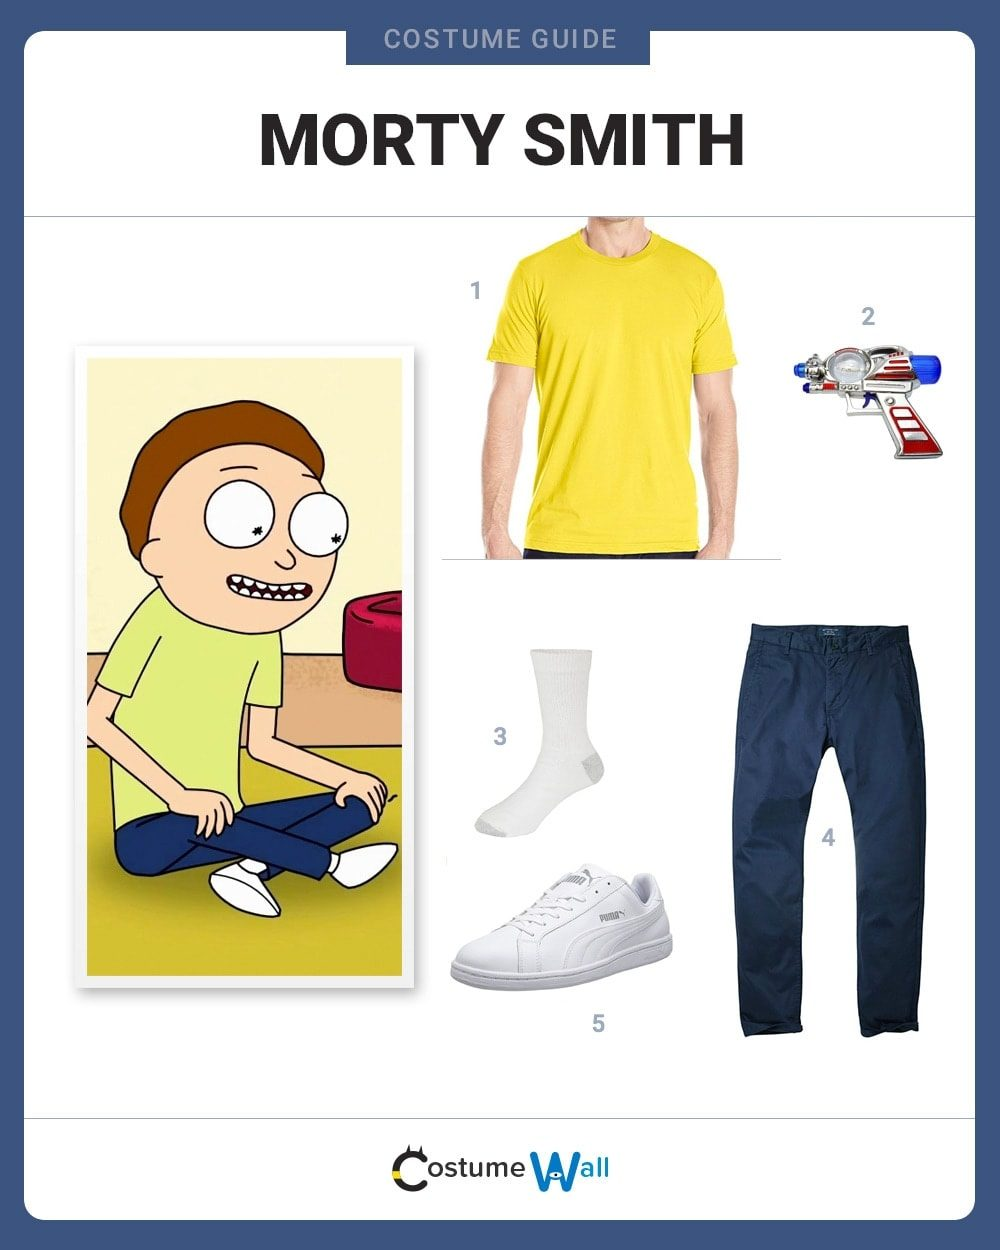 Morty Smith Costume Guide